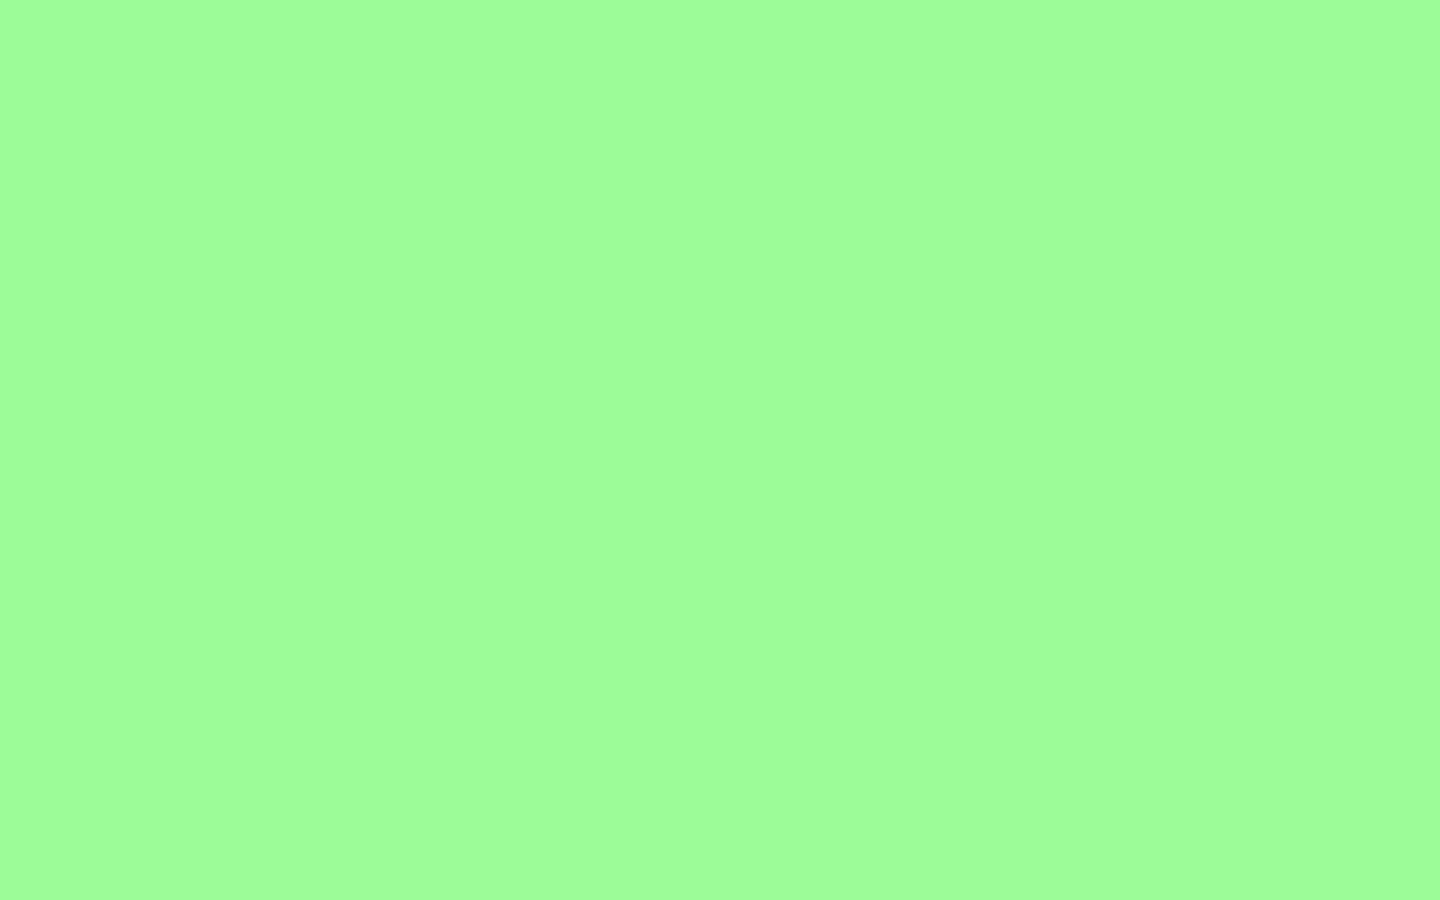 1440x900 Pale Green Solid Color Background